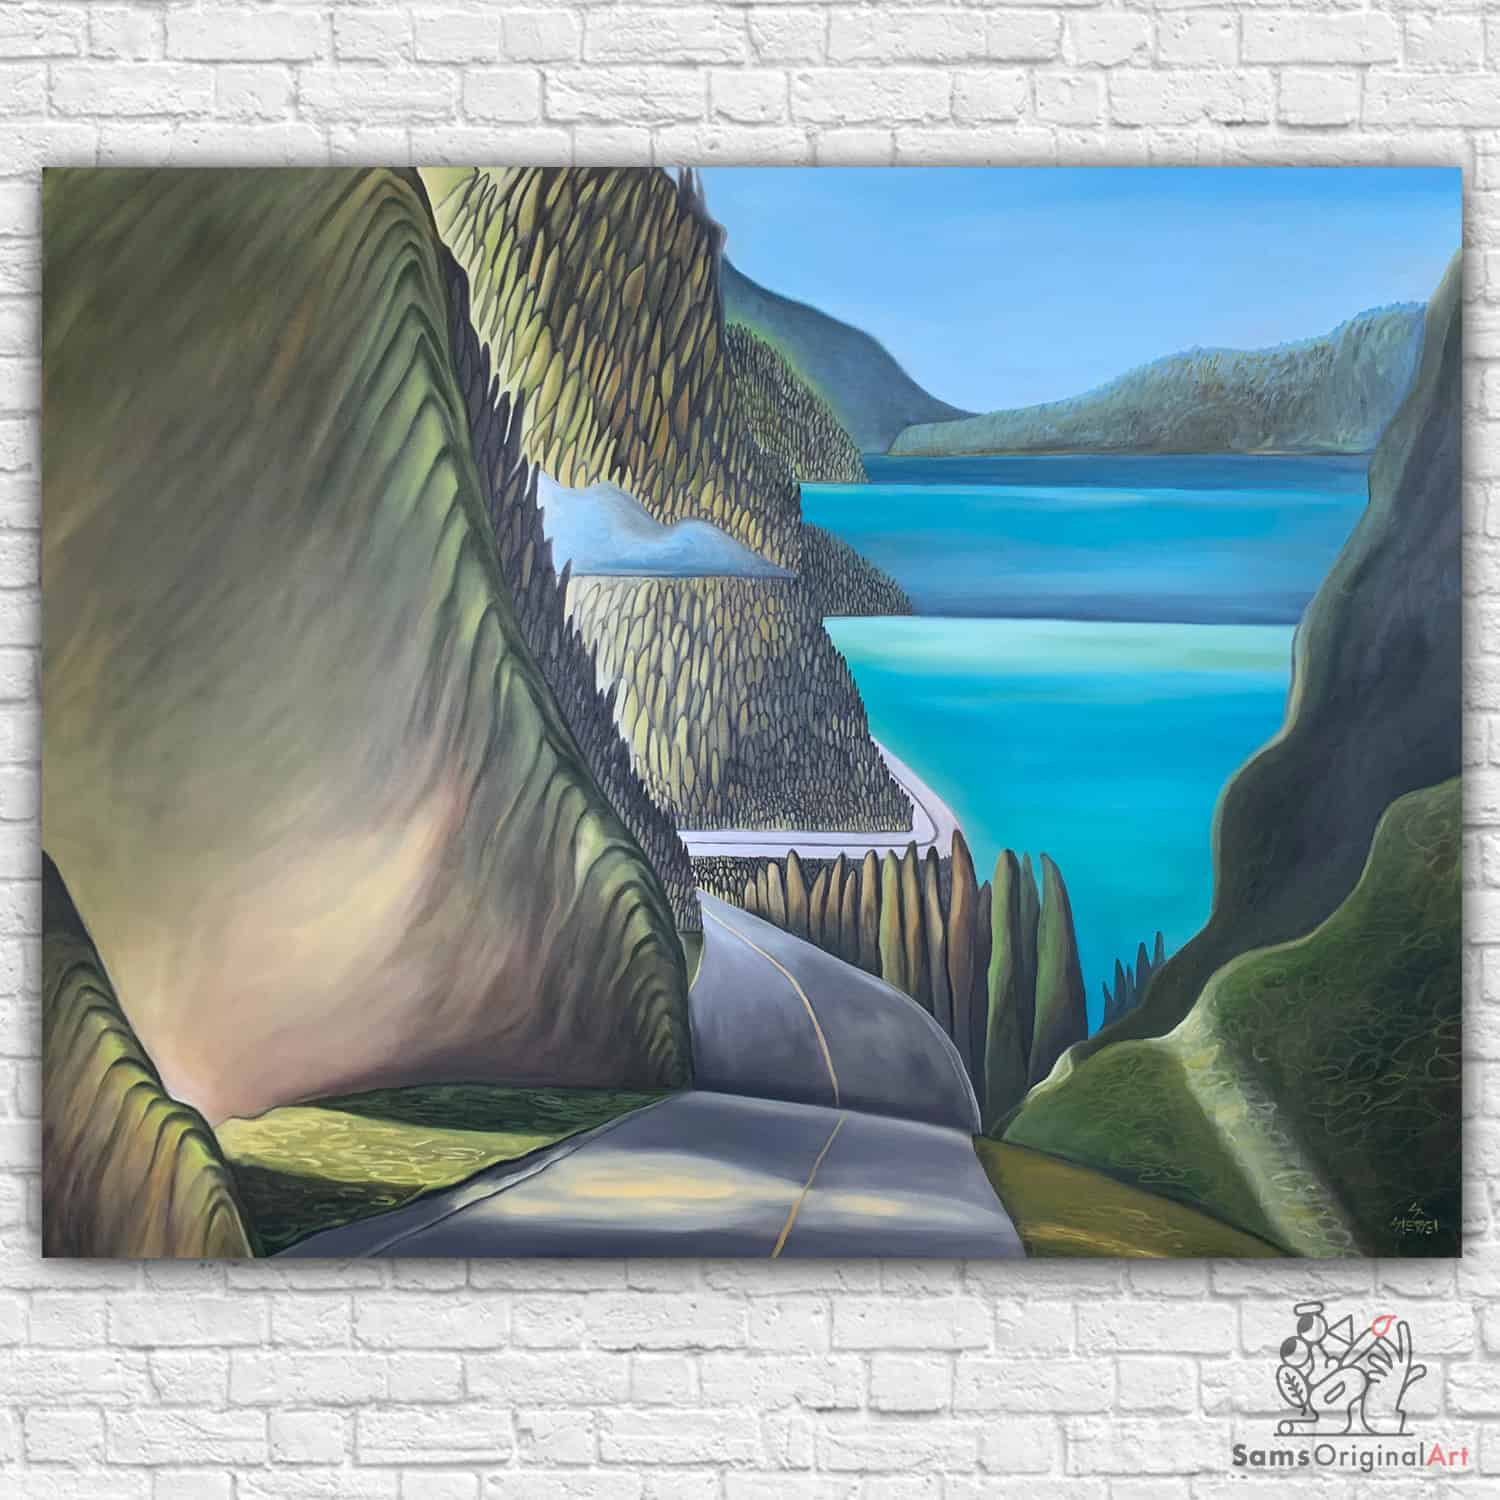 sea to sky highway painting